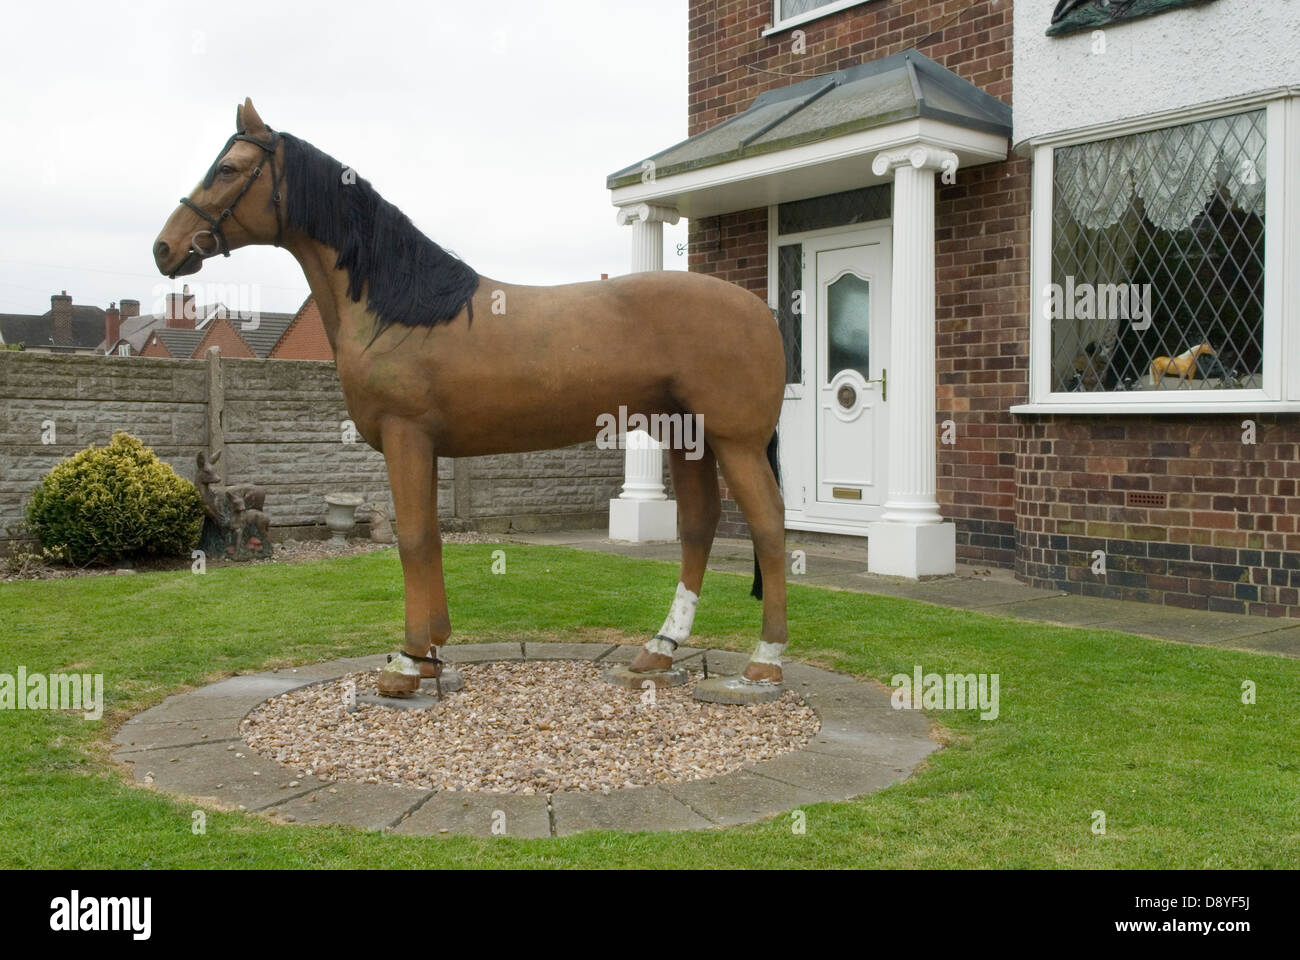 house decoration with fiber glass horse in front garden stock